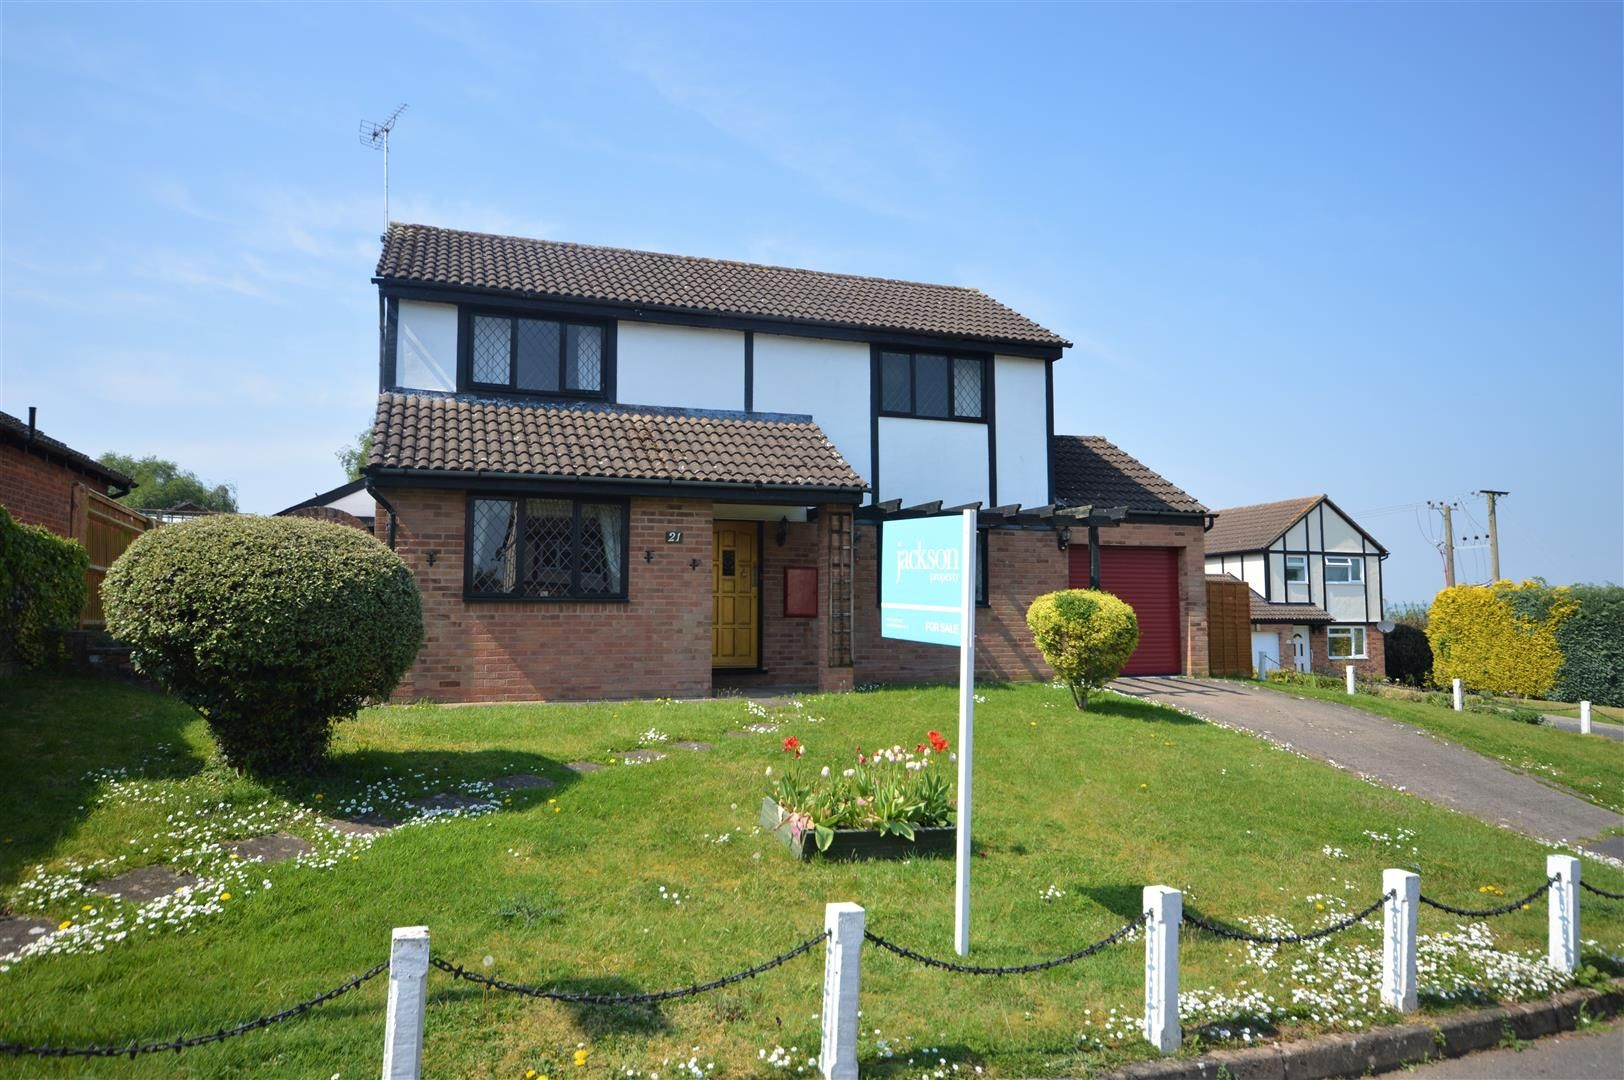 3 bed detached for sale in Leominster 12